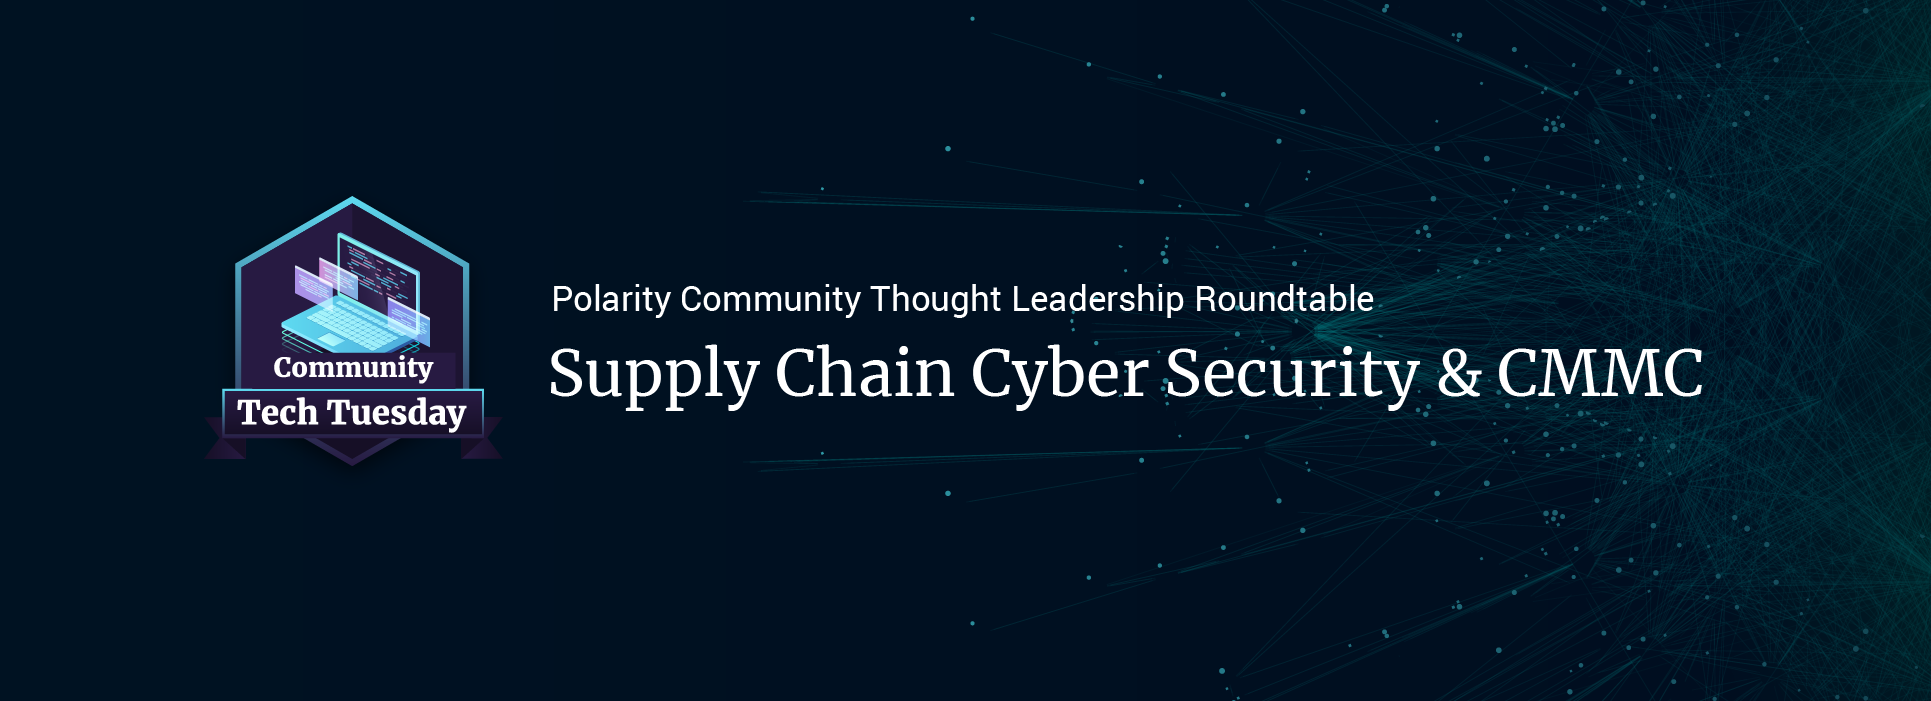 Supply Chain Cyber Security & CMMC a Polarity Community Thought Leadership Roundtablecover image